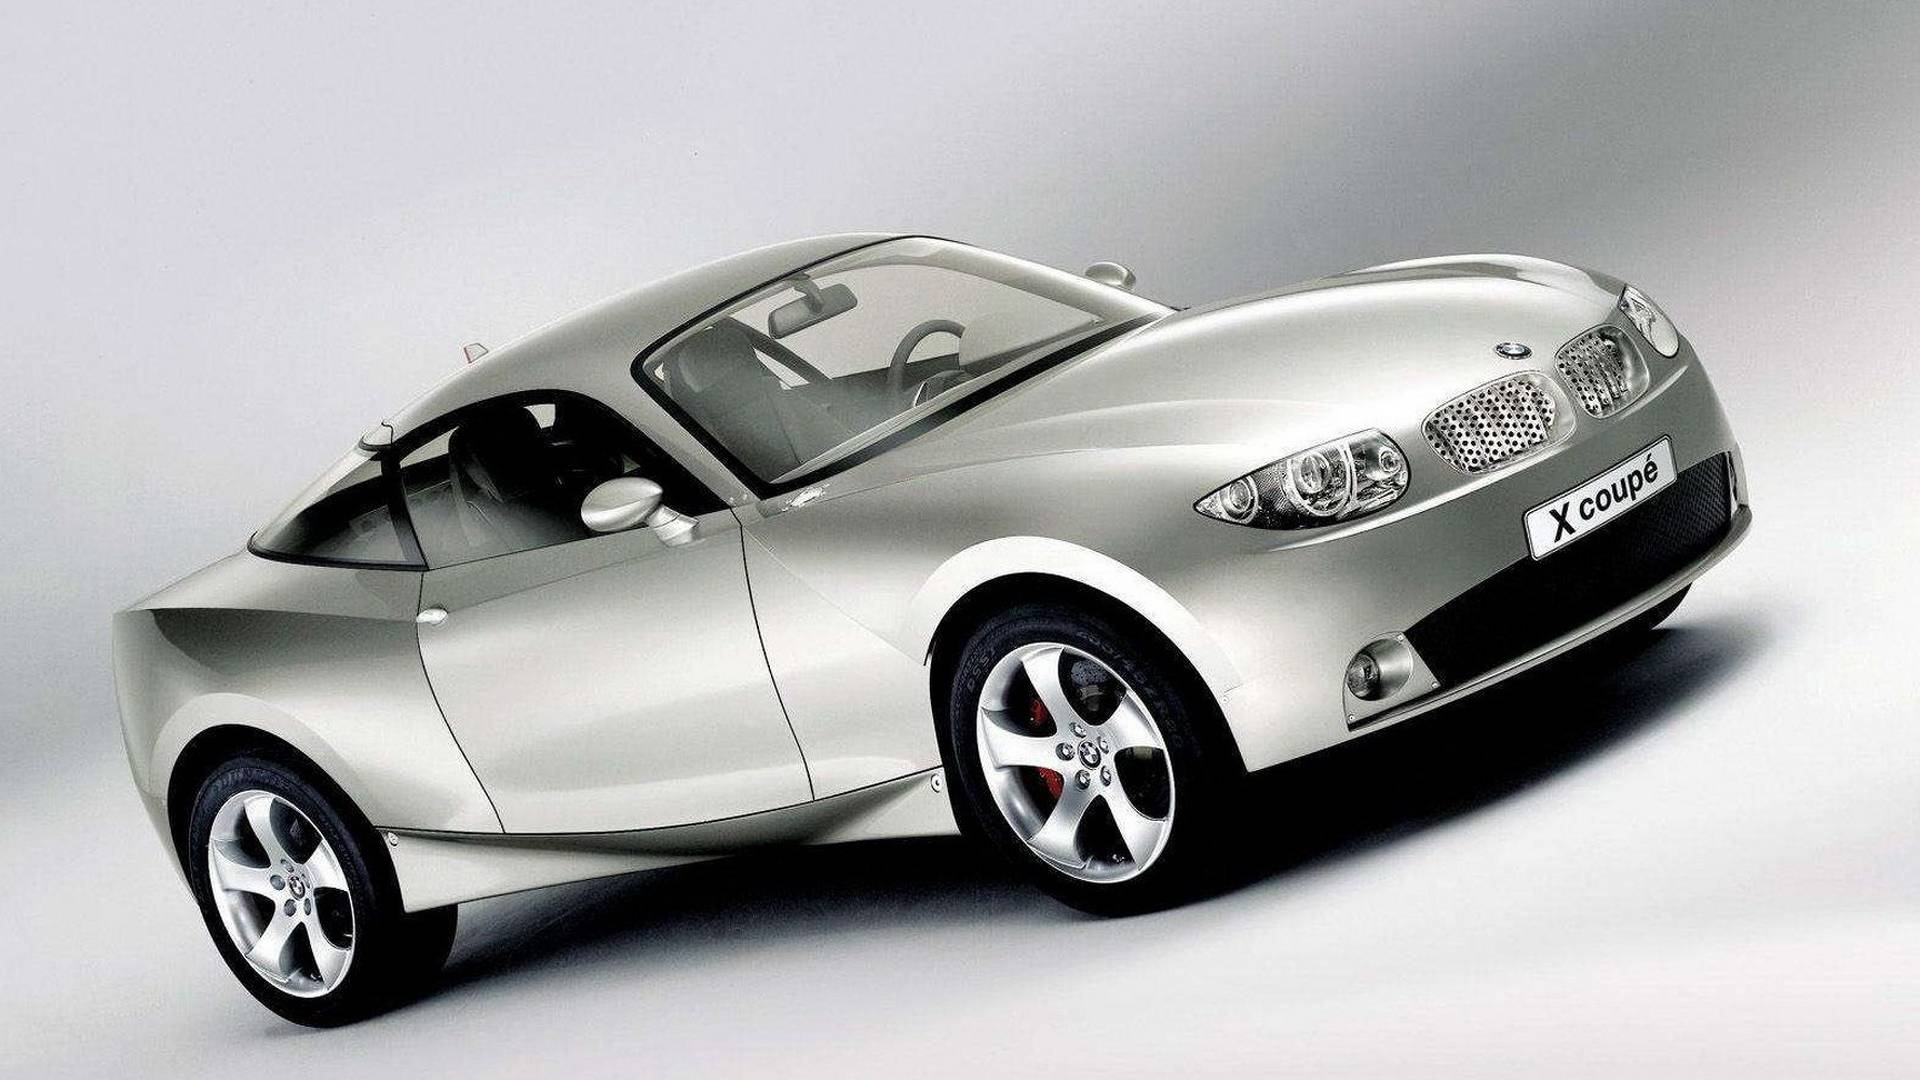 2001-bmw-x-coupe-concept2